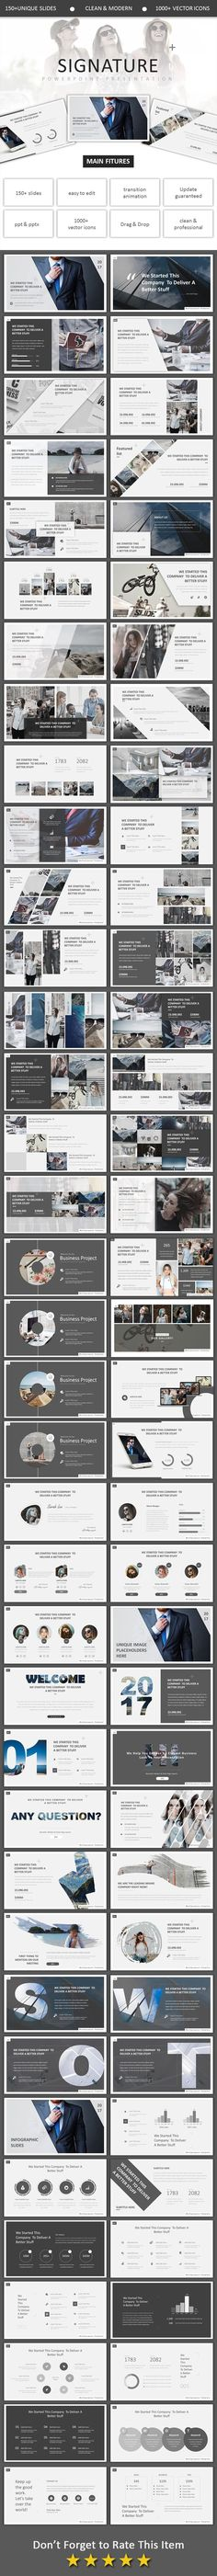 Signature Powerpoint - Business PowerPoint Templates